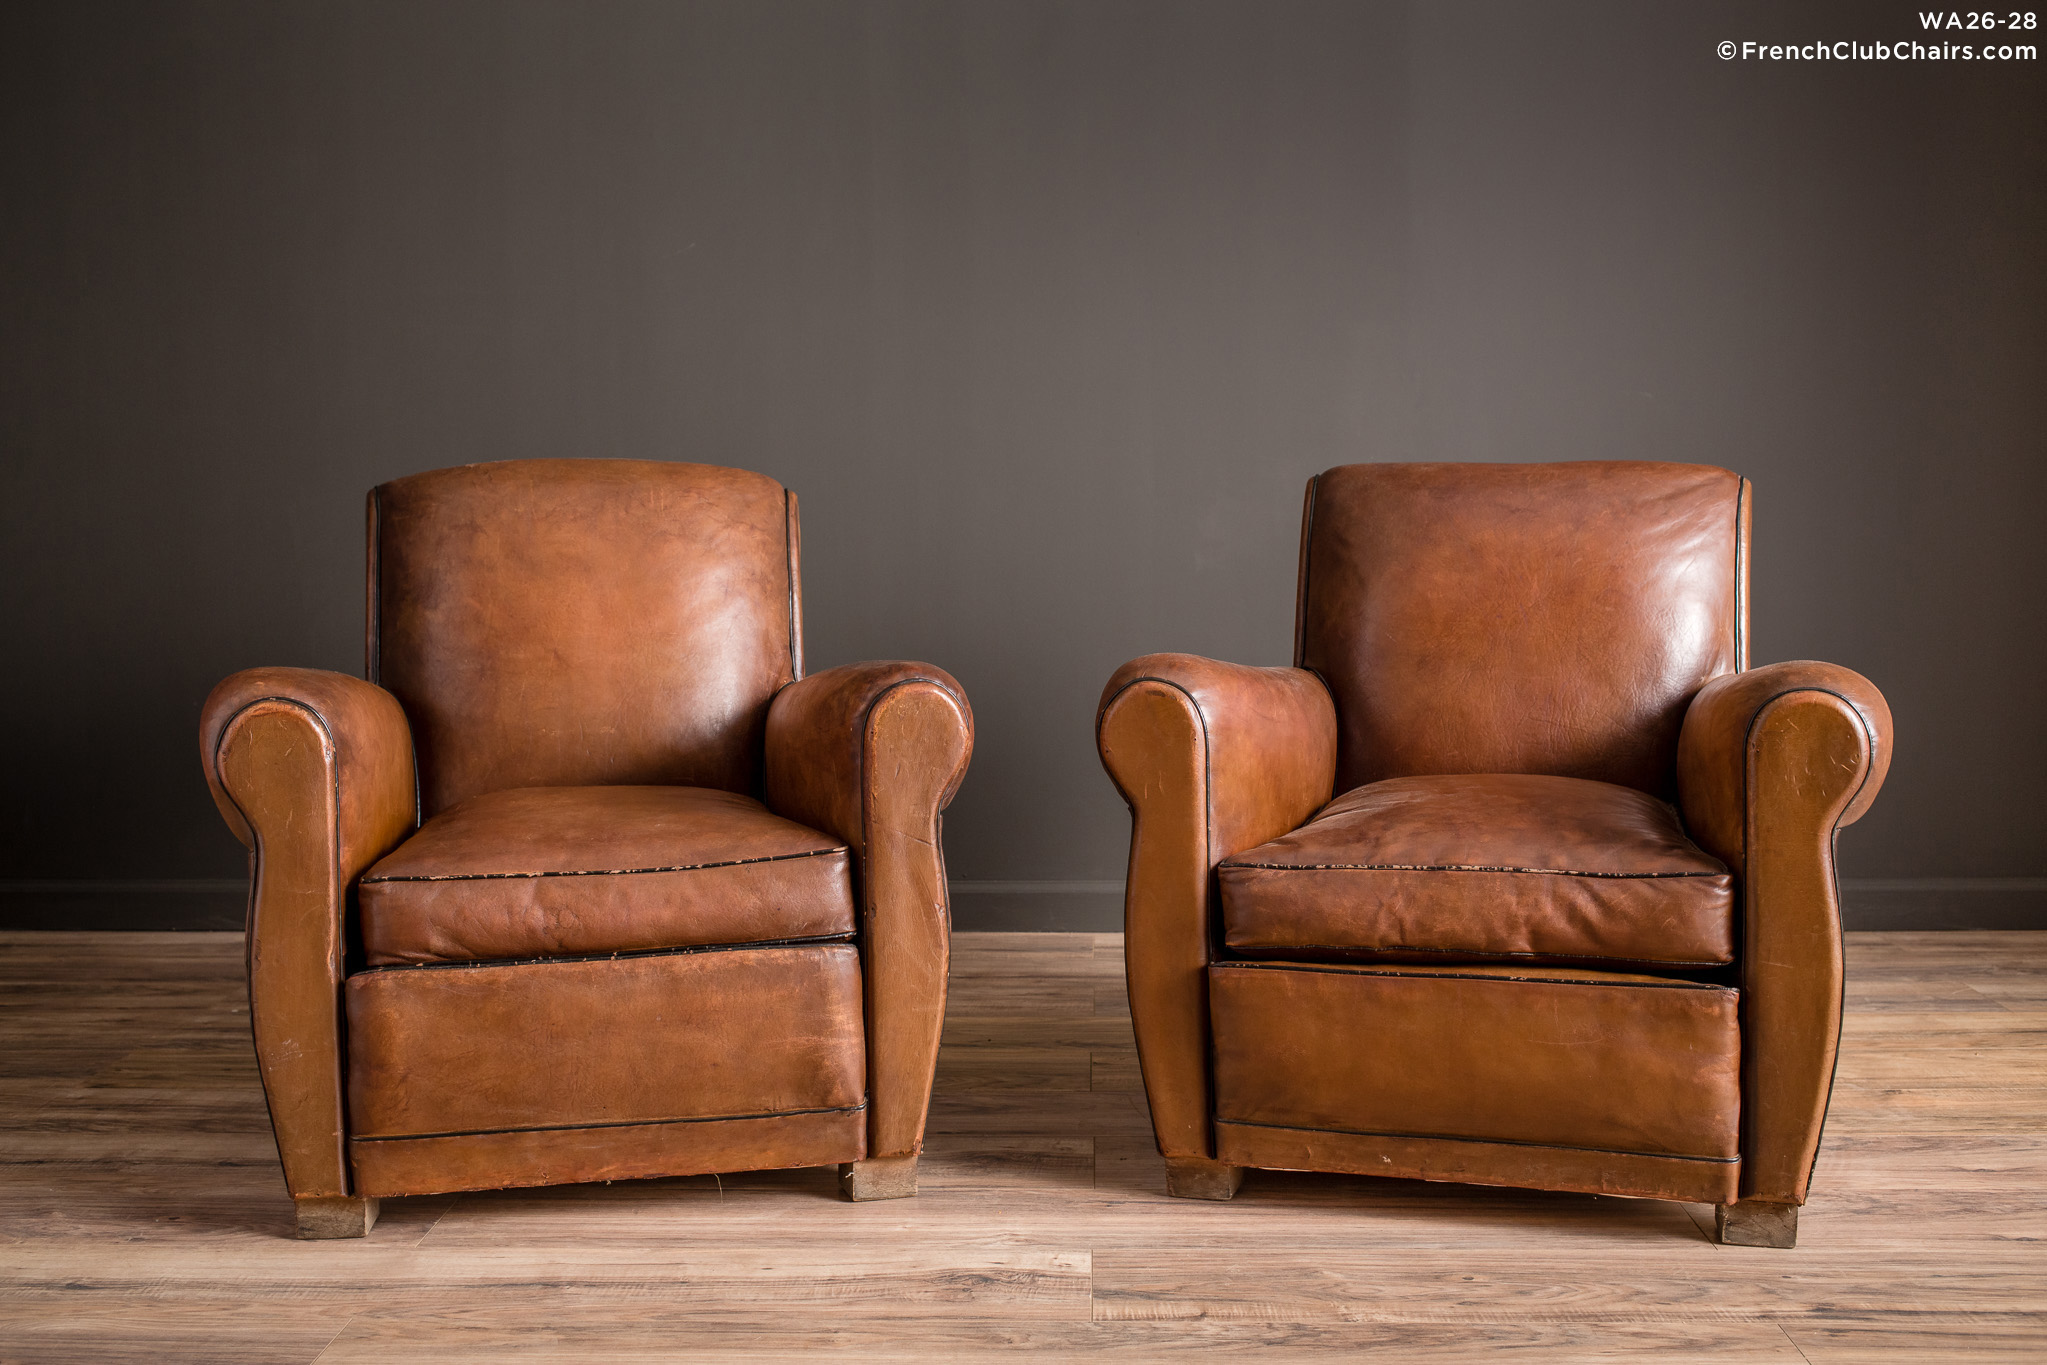 WA_26-28_Sursense_Slope_Pair_R_1TQ-v01-williams-antiks-leather-french-club-chair-wa_fcccom